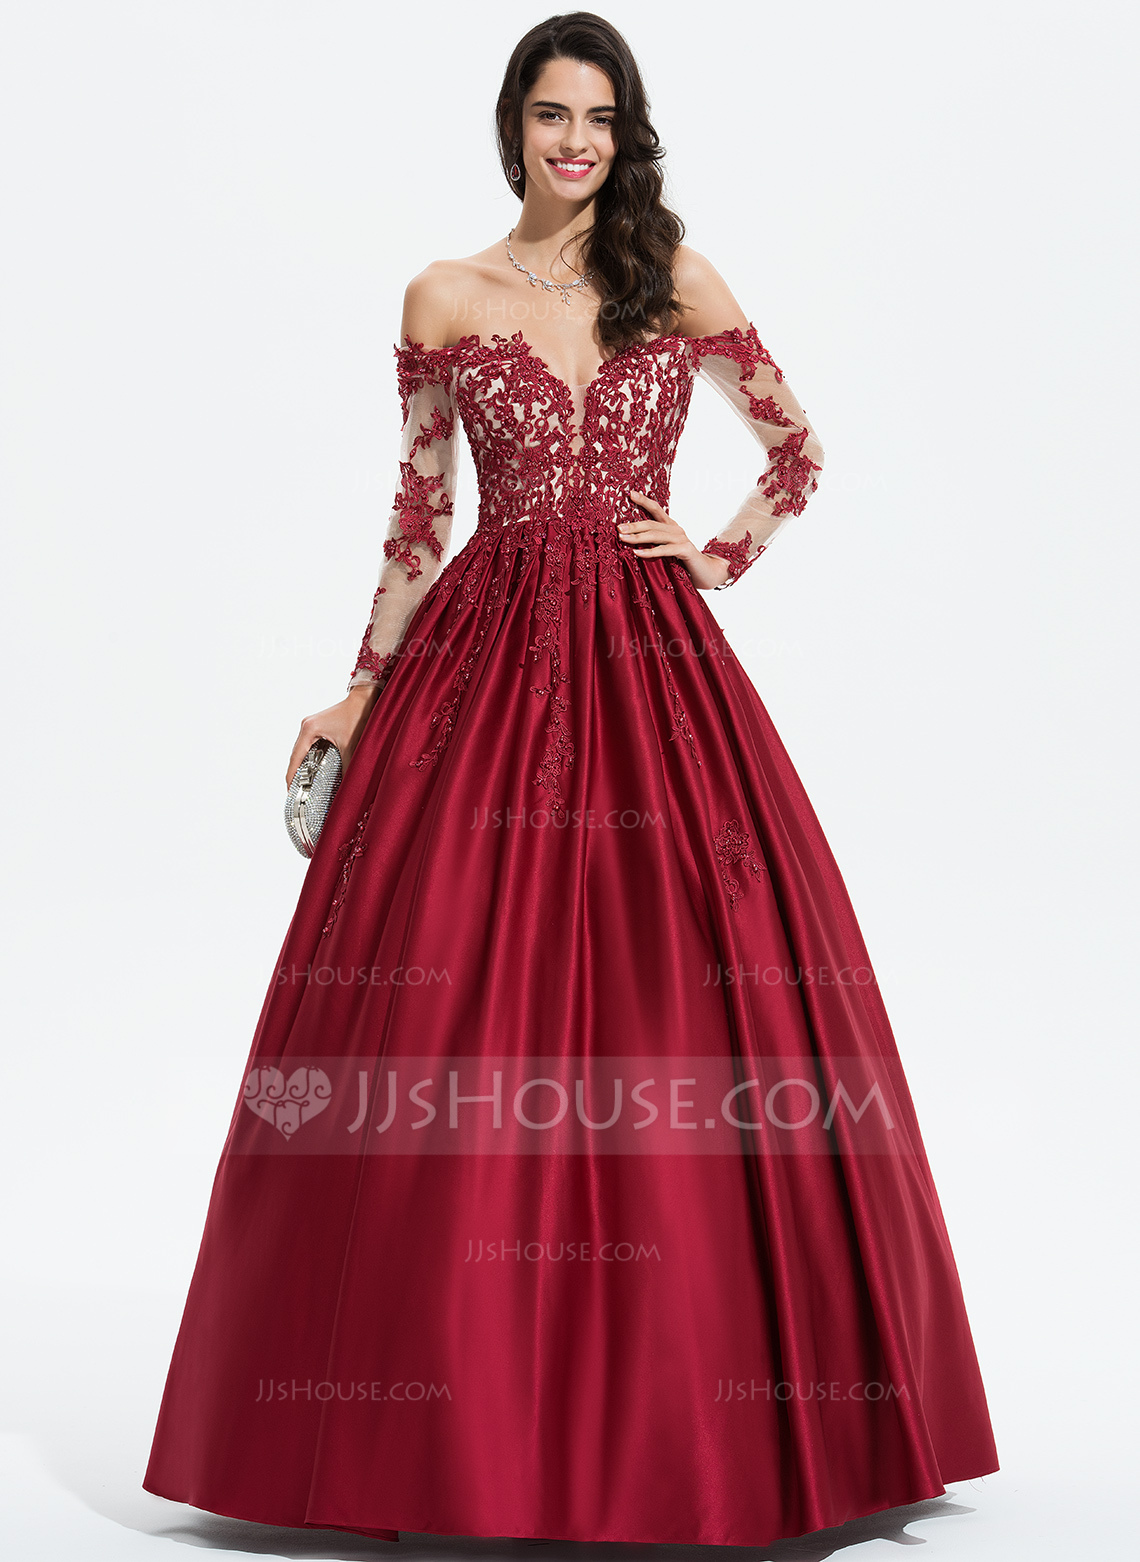 b8154174a2f5 Ball-Gown/Princess Off-the-Shoulder Floor-Length Satin Prom Dresses.  Loading zoom